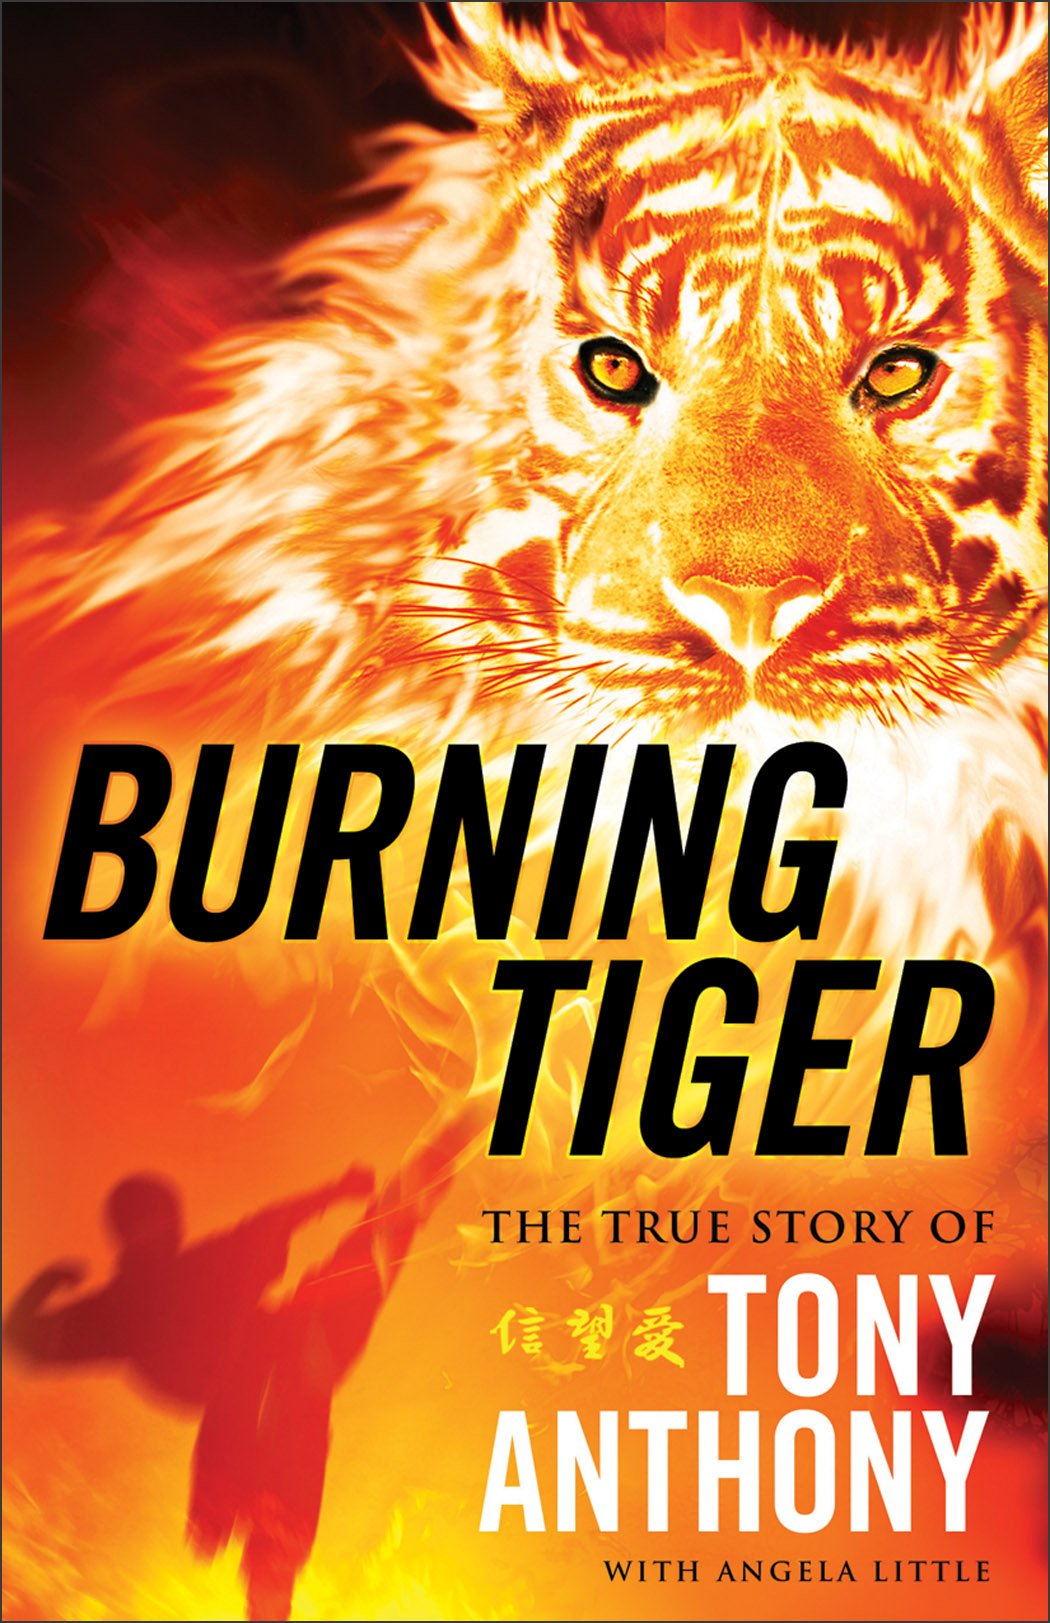 Burning Tiger: When Honor Is Lost, Hope Remains: Tony